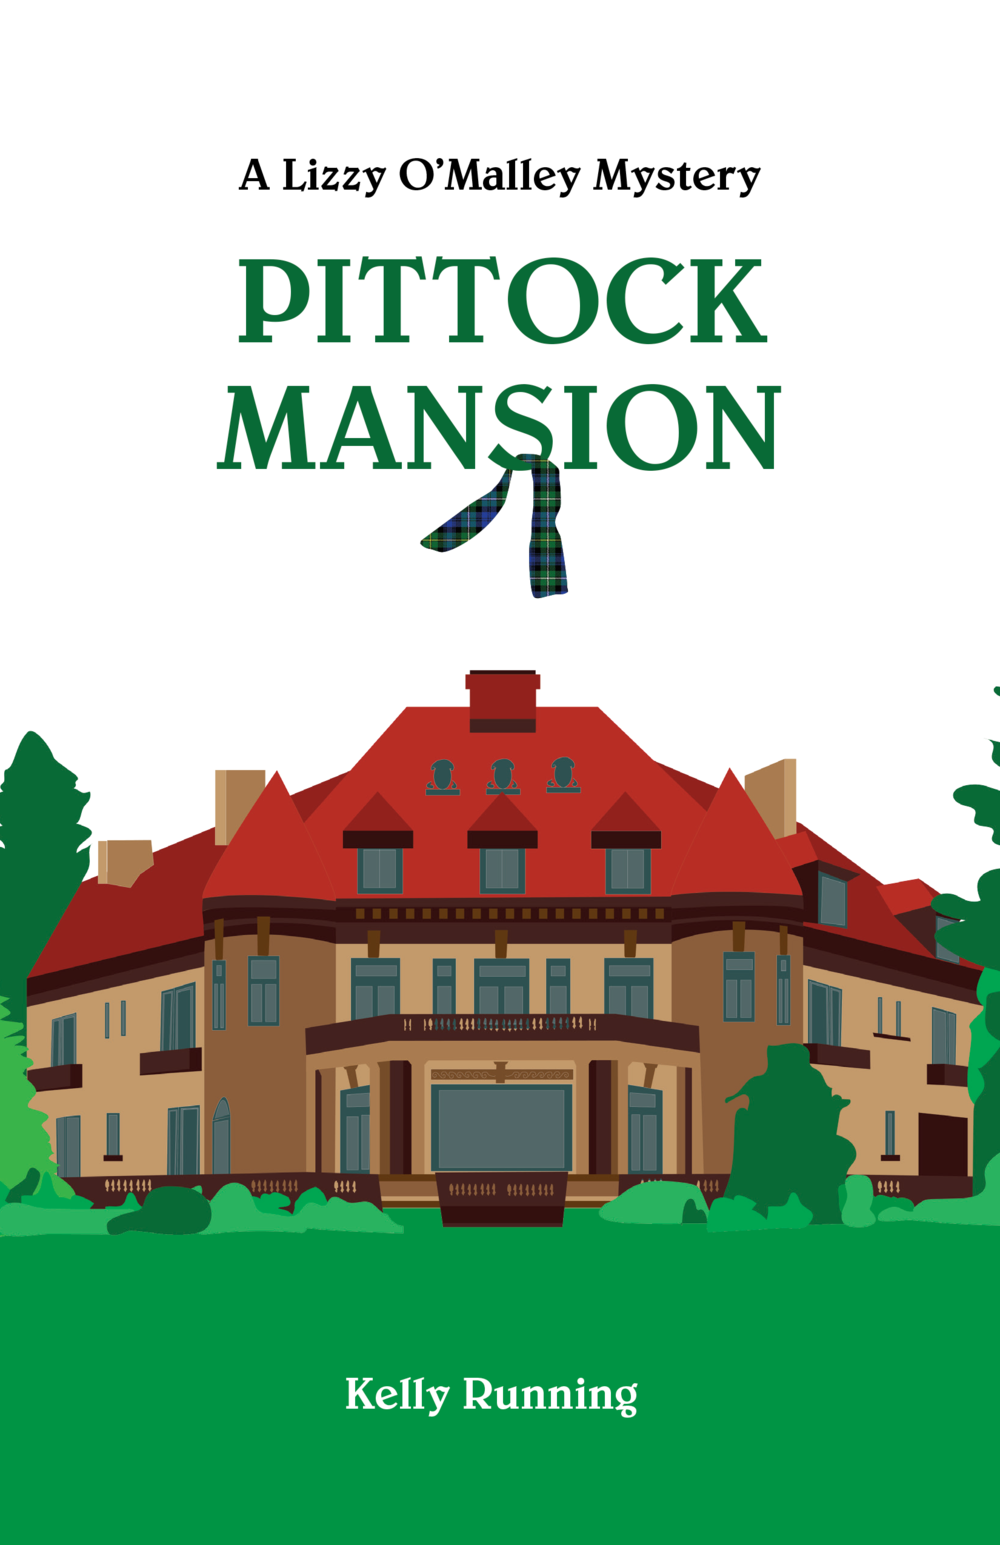 Pittock Mansion by Kelly Running (April 2019)